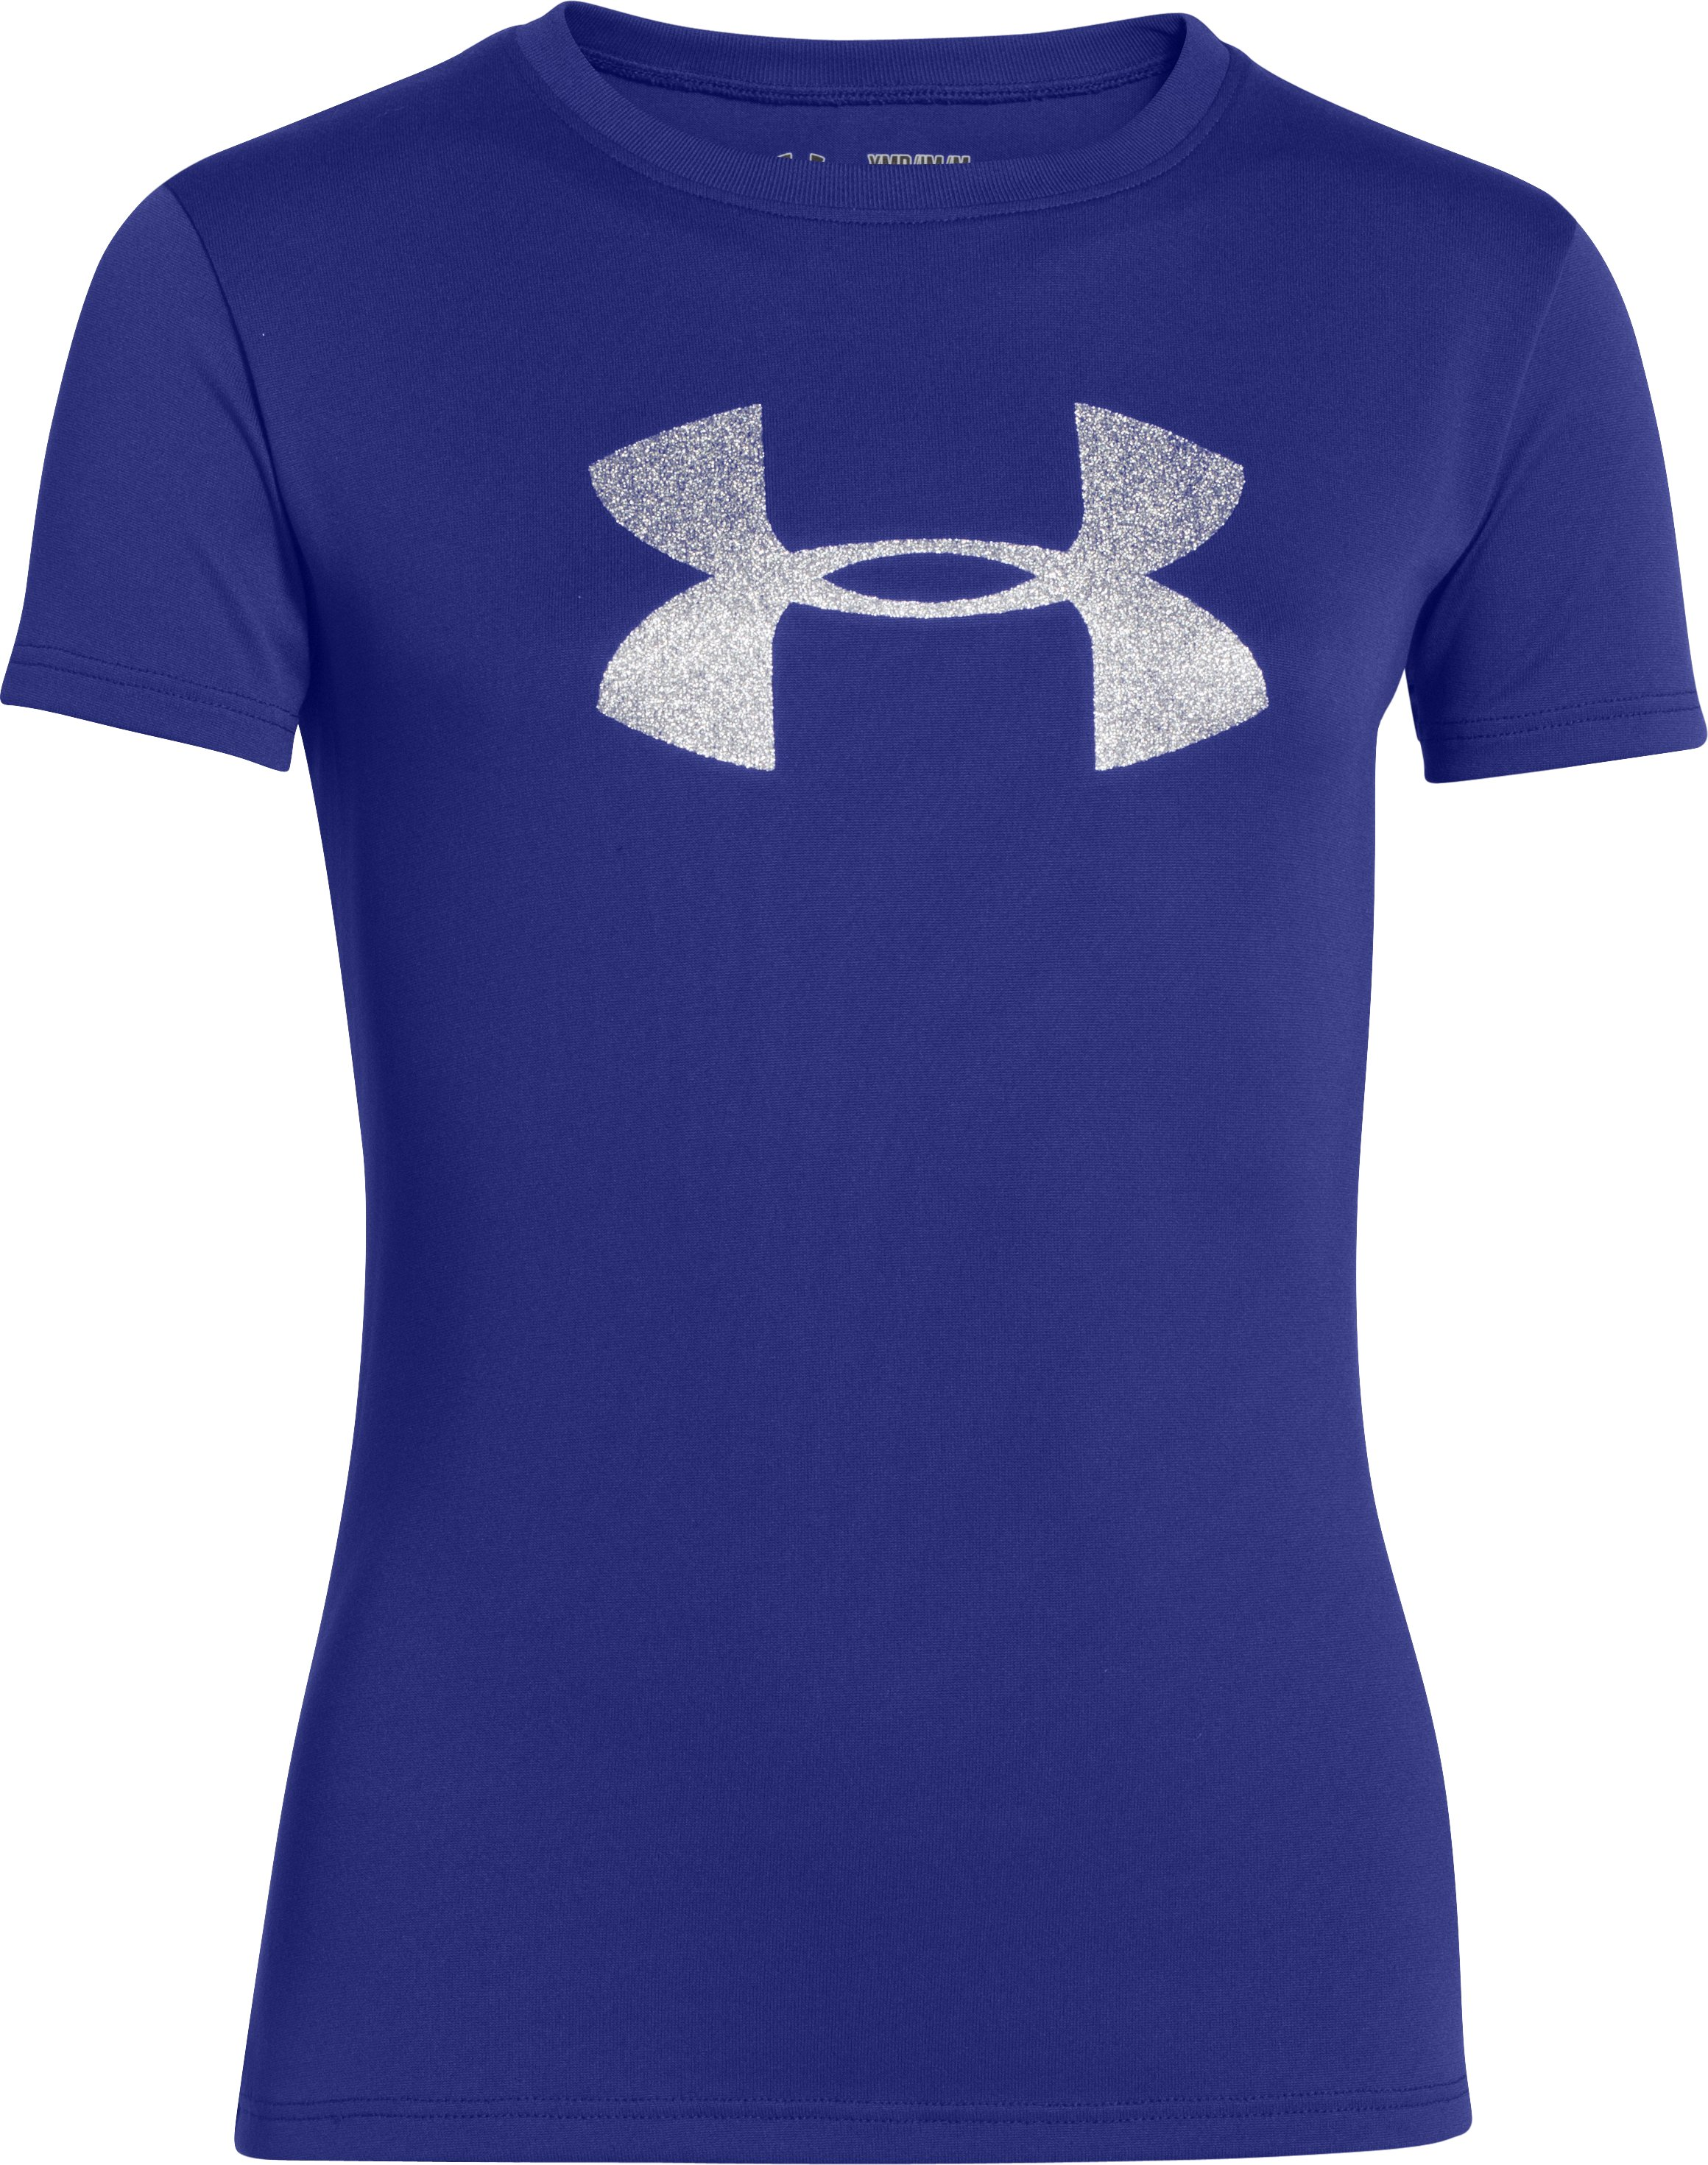 Girls' UA Big Logo Short Sleeve T-Shirt, SIBERIAN IRIS, undefined